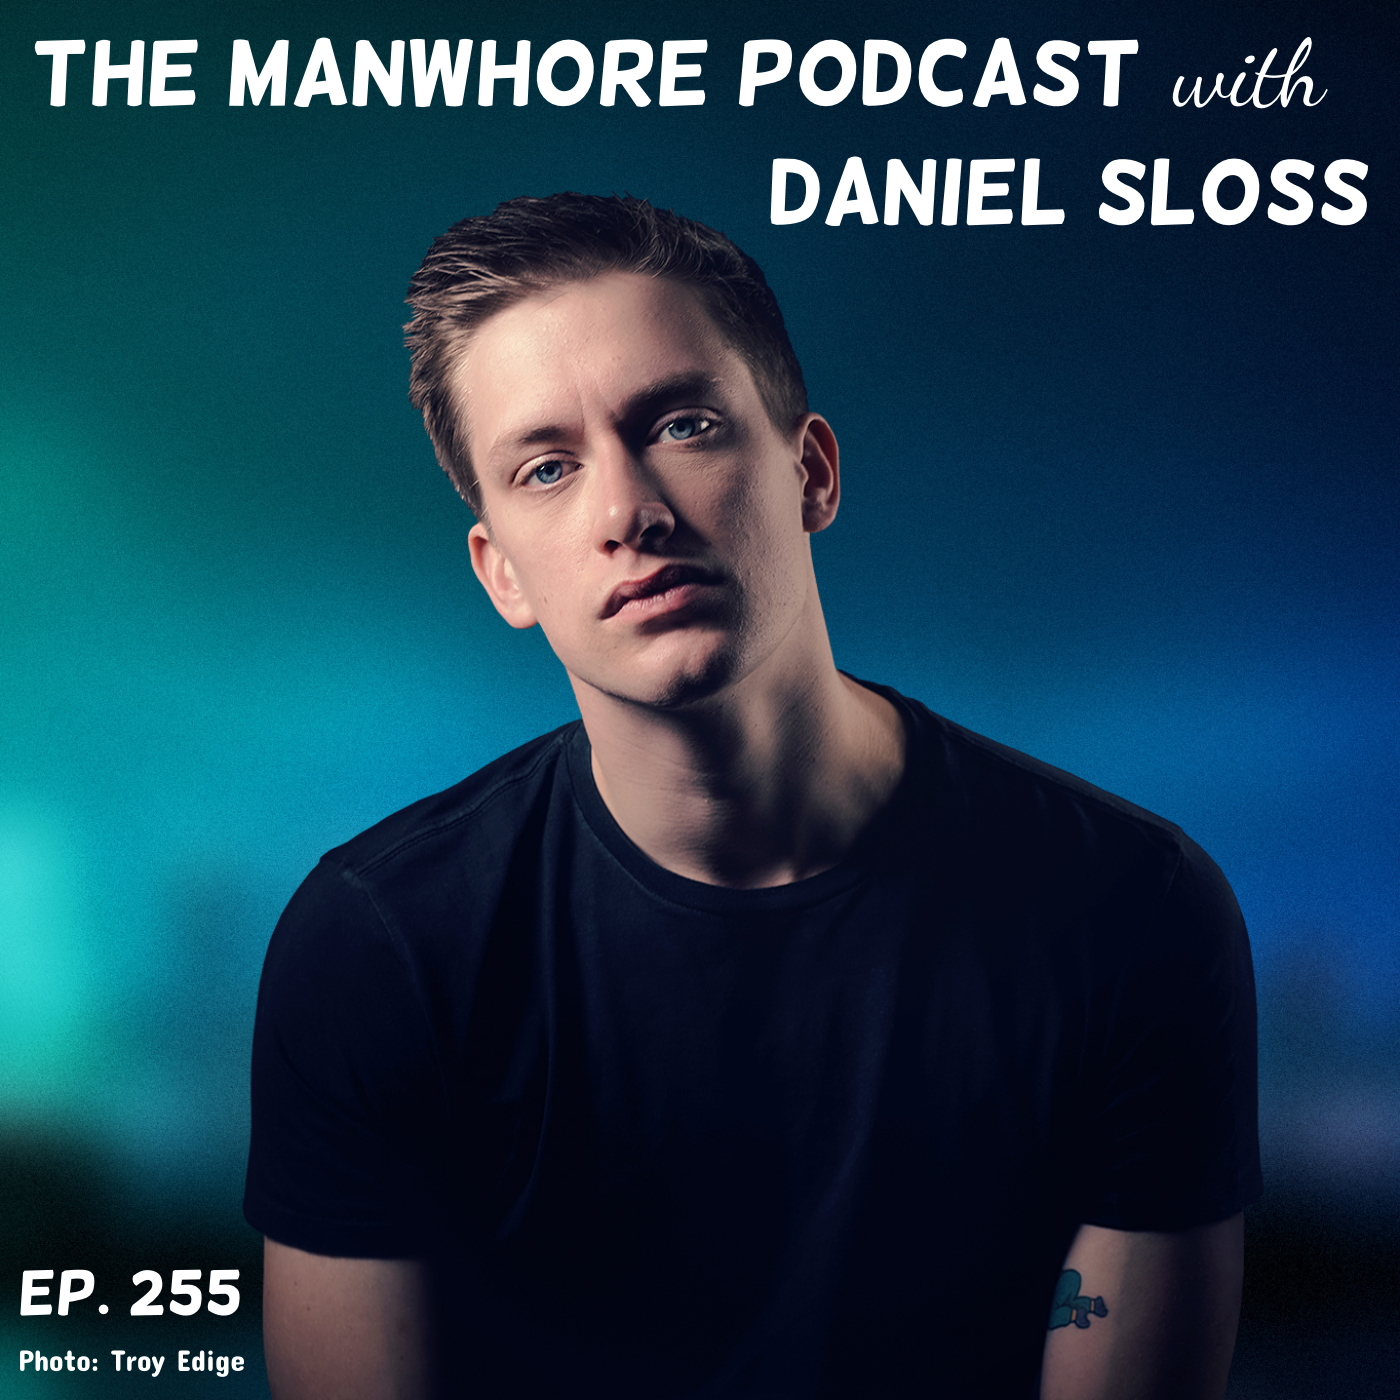 The Manwhore Podcast: A Sex-Positive Quest - Ep. 255: Taking the Toxic Out of Masculinity with Daniel Sloss // Guest Host Rosa Escandon